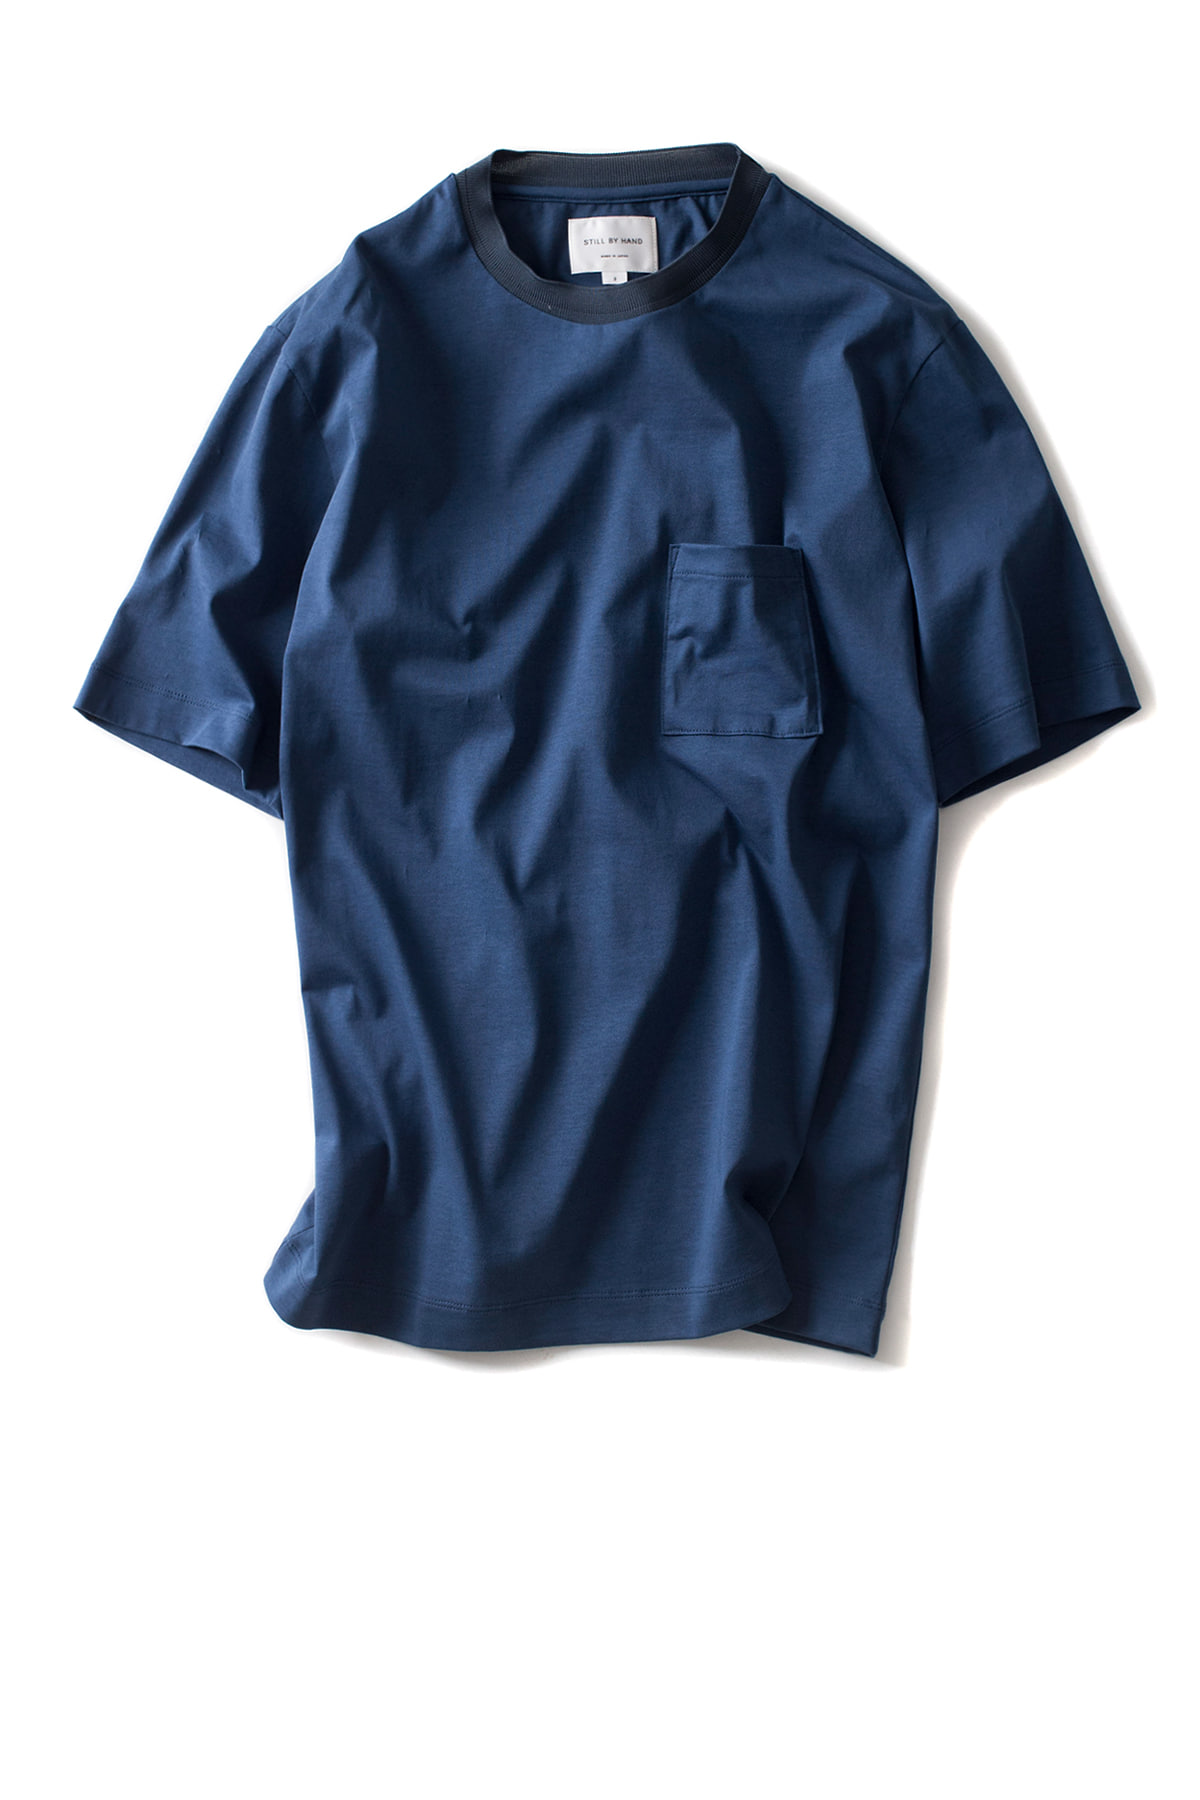 Still by Hand : Ringer T-Shirt (Blue)